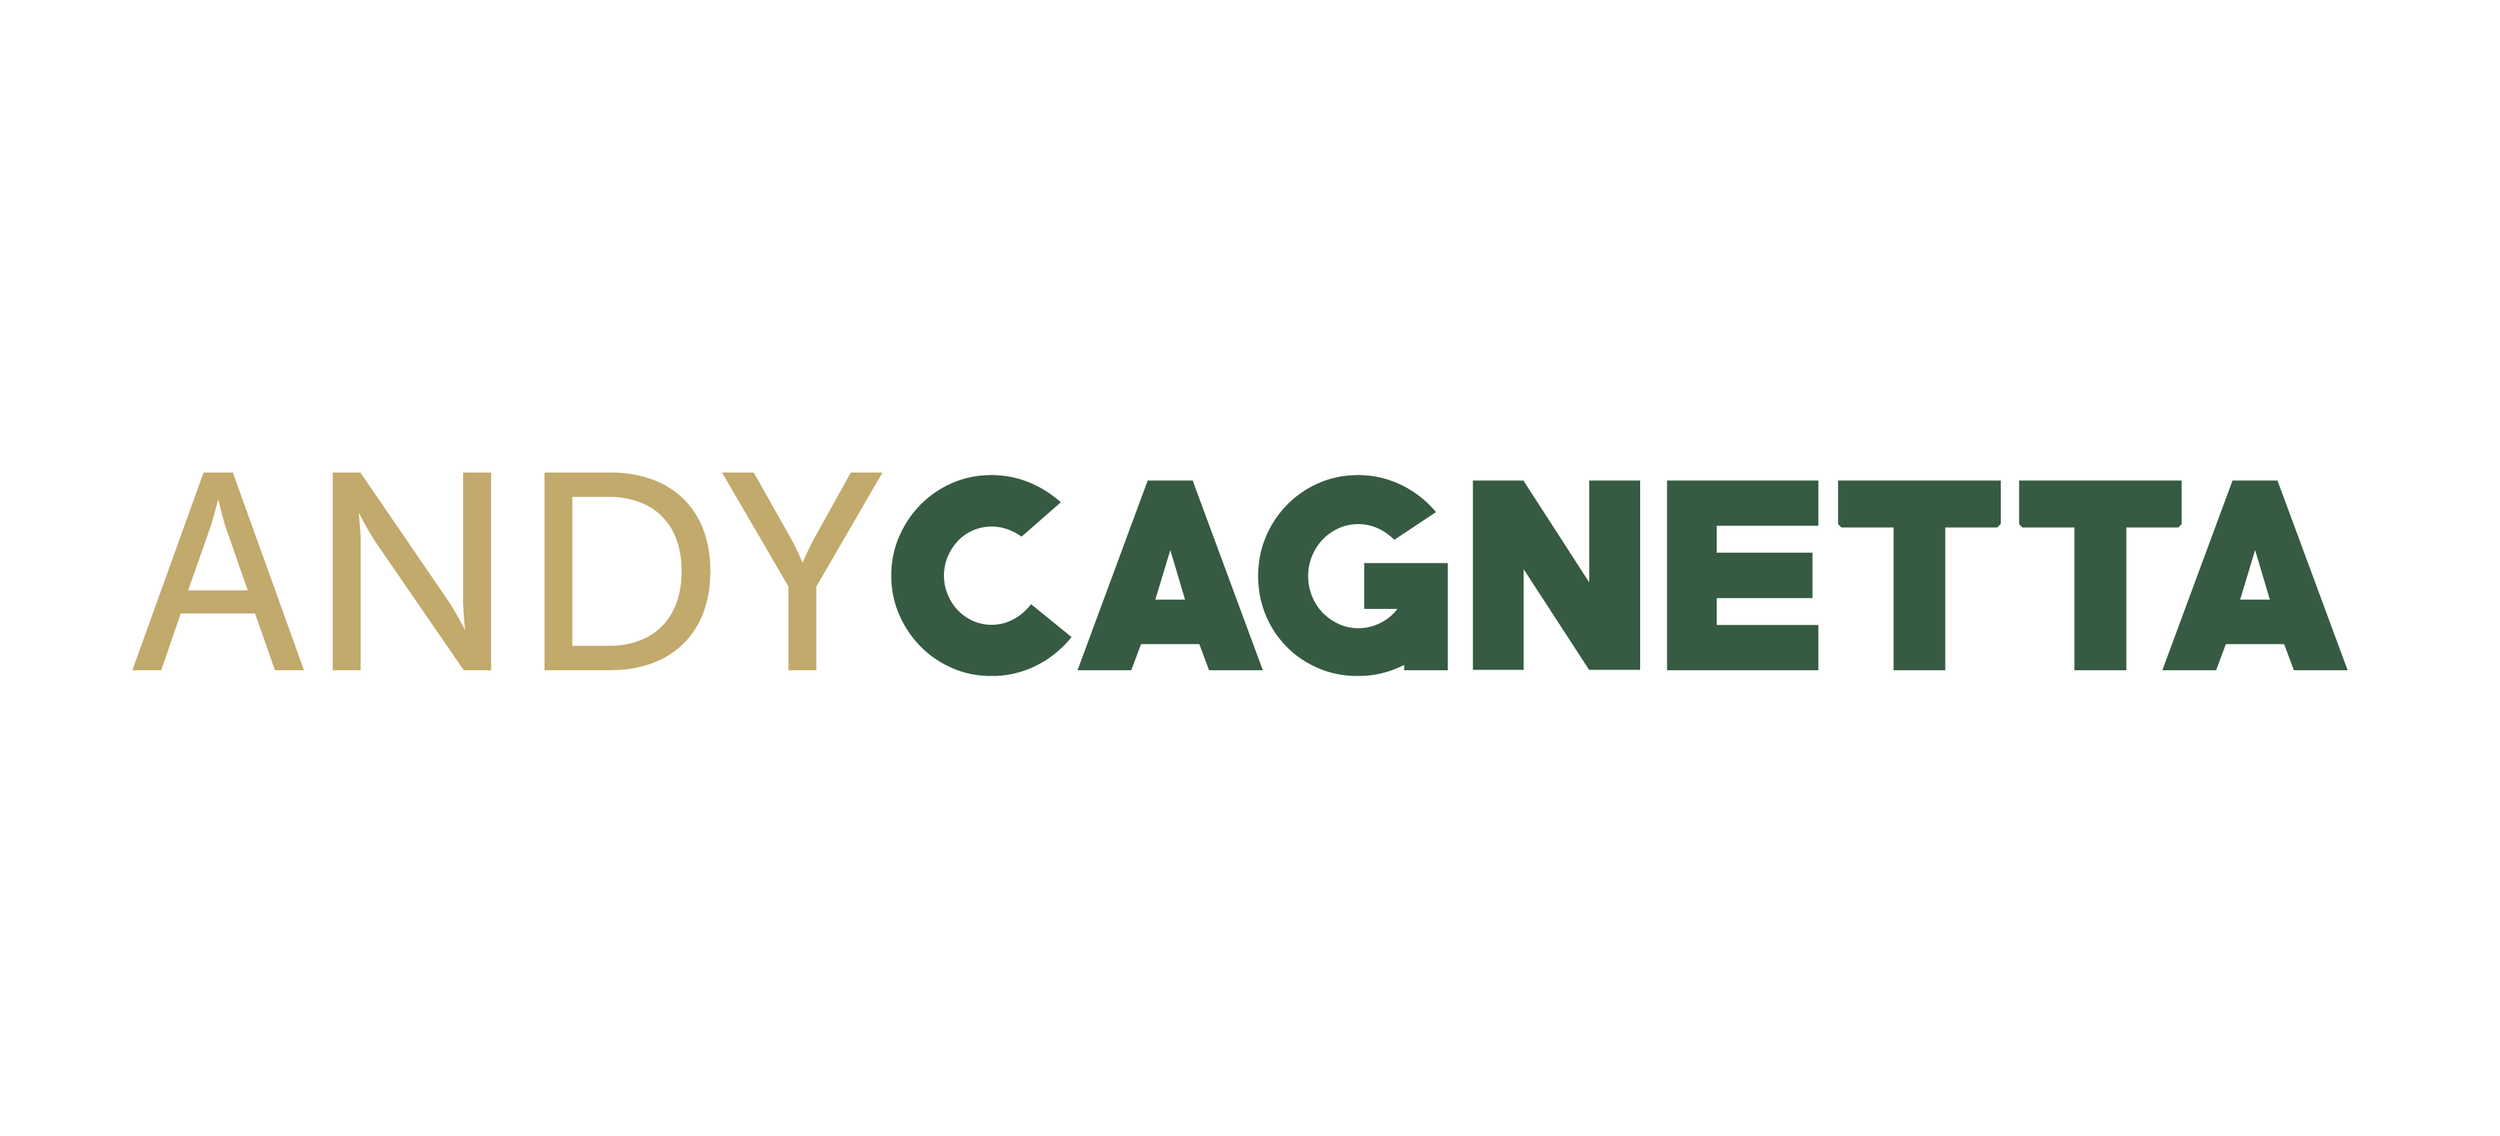 Andy Cagnetta Logo.png